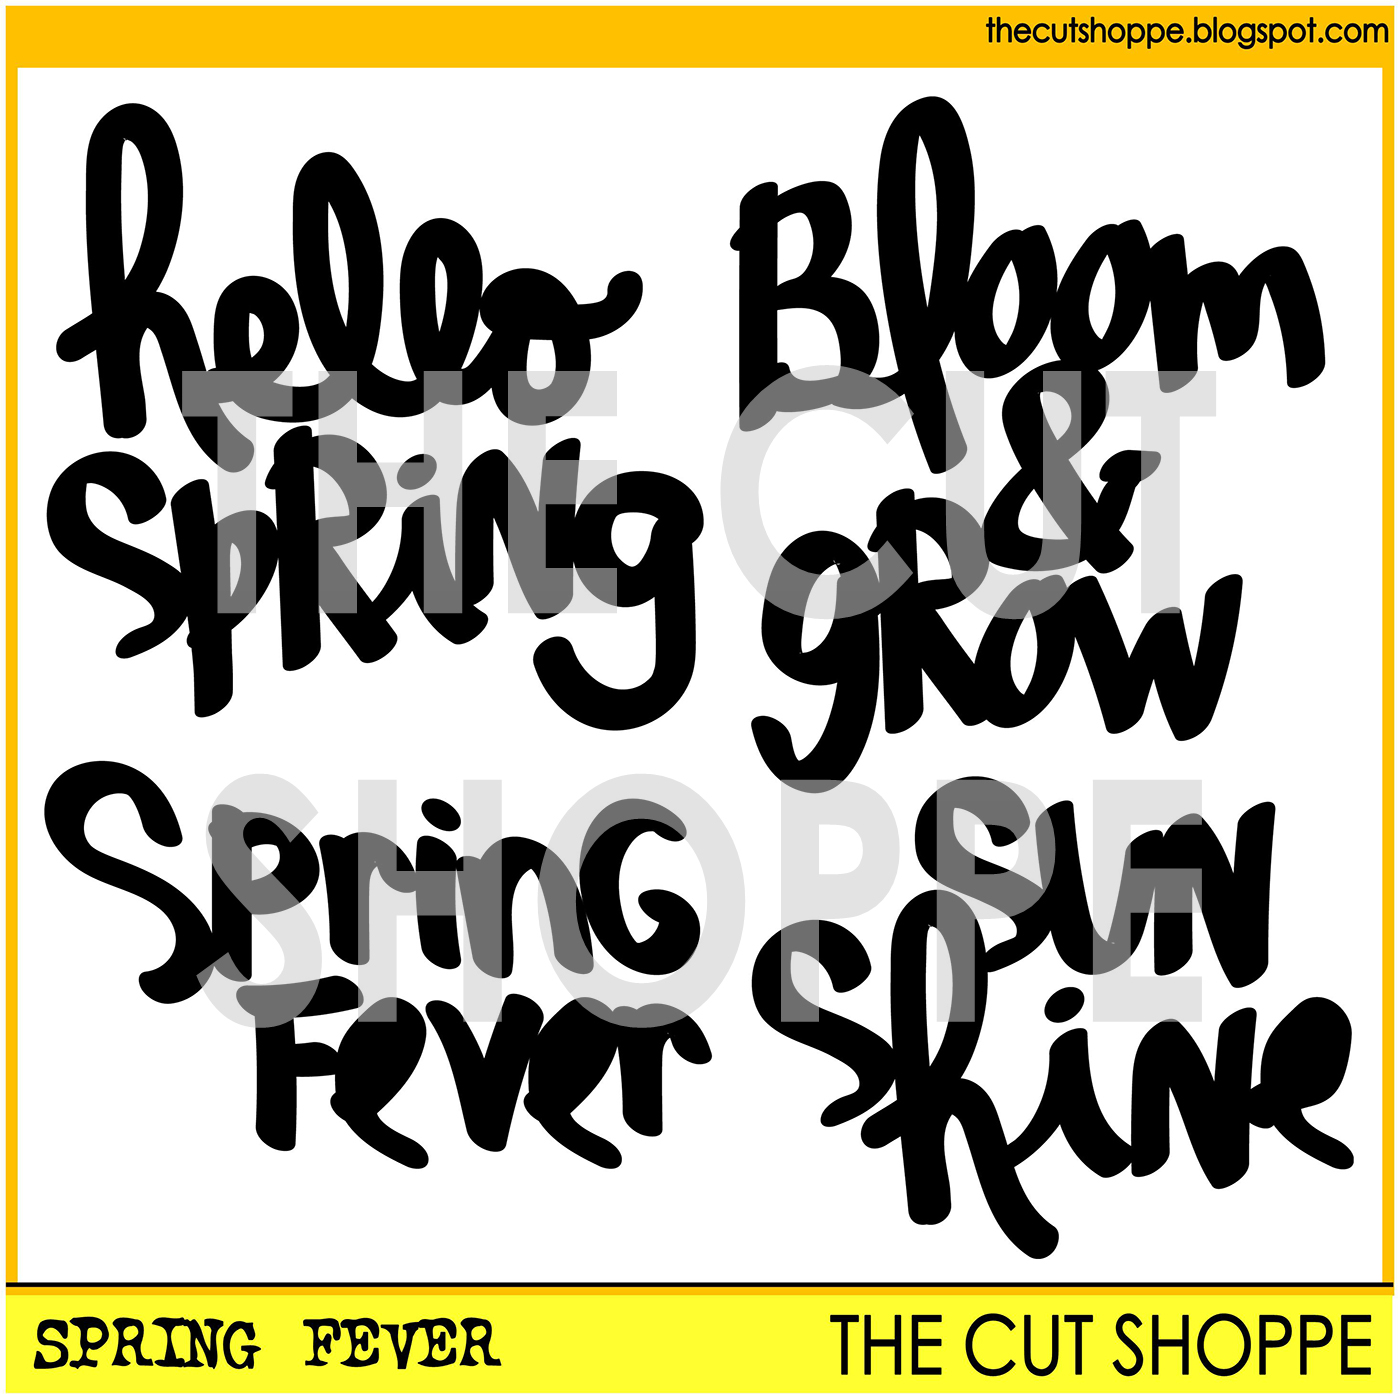 https://www.etsy.com/listing/228409427/the-spring-fever-cut-file-consists-of-4?ref=shop_home_active_1